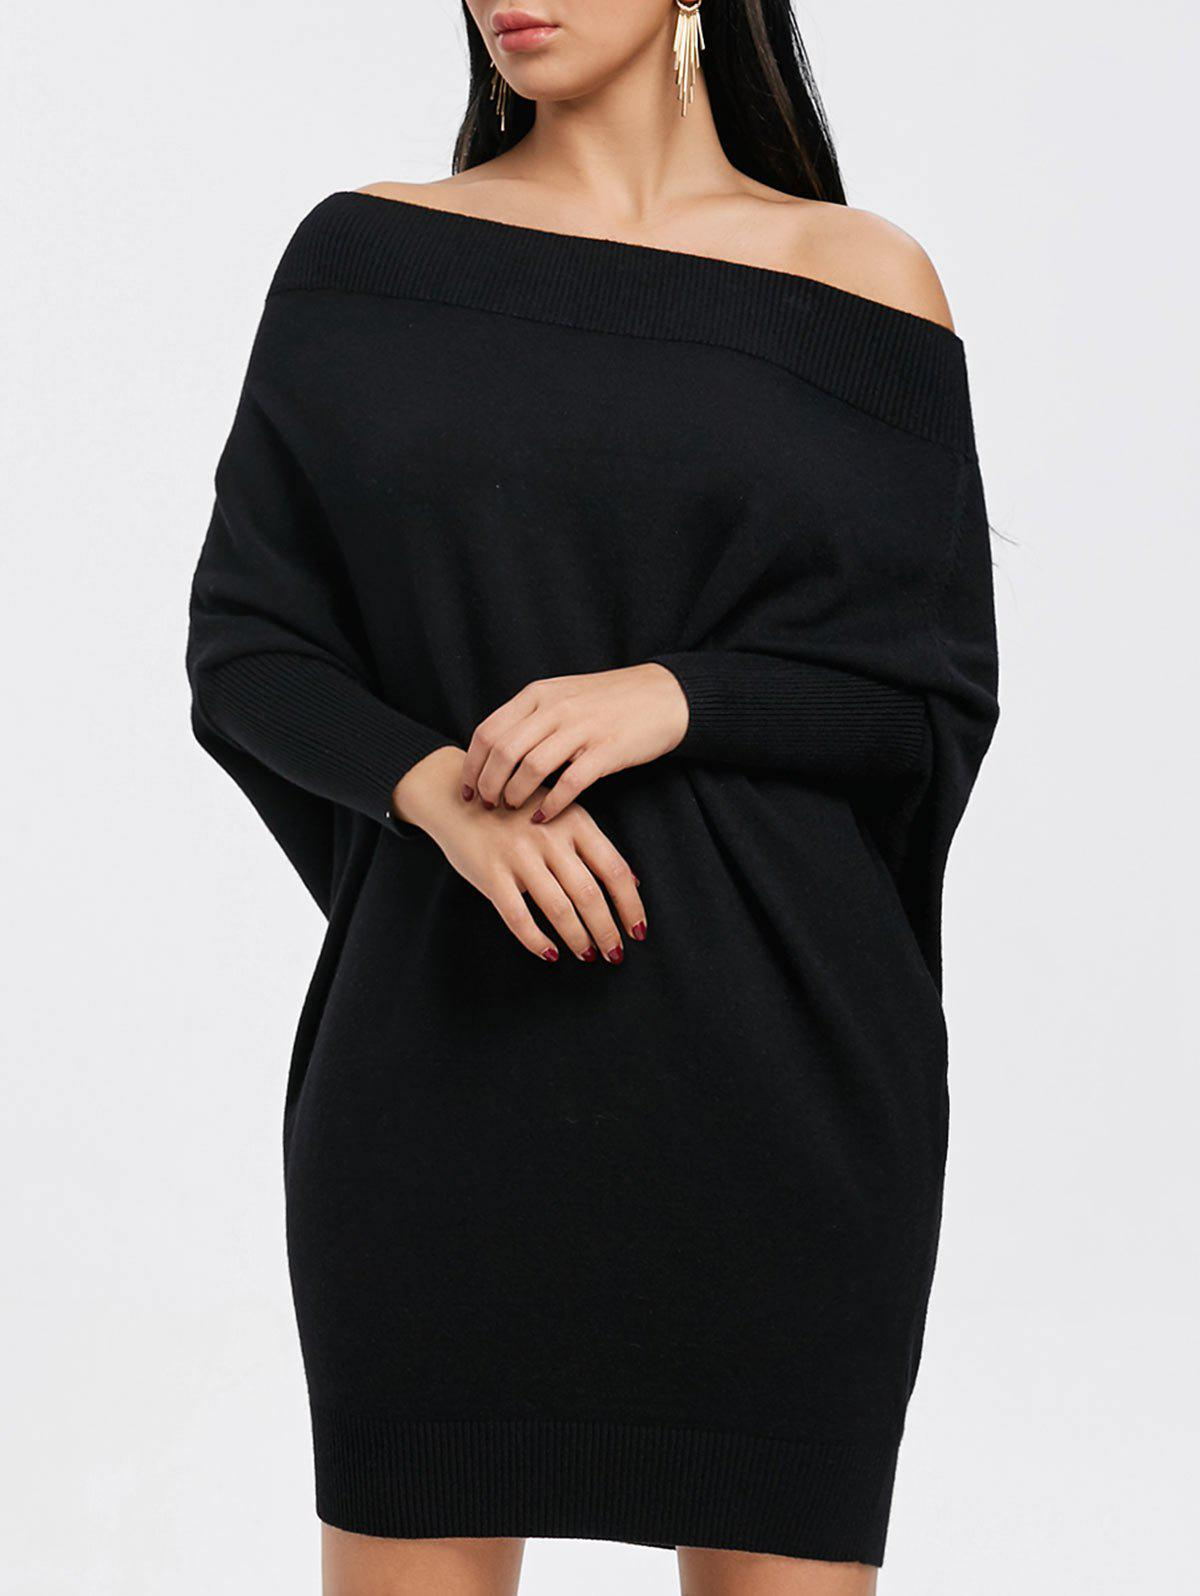 Fashion Batwing Sleeve Off The Shoulder Kint Dress